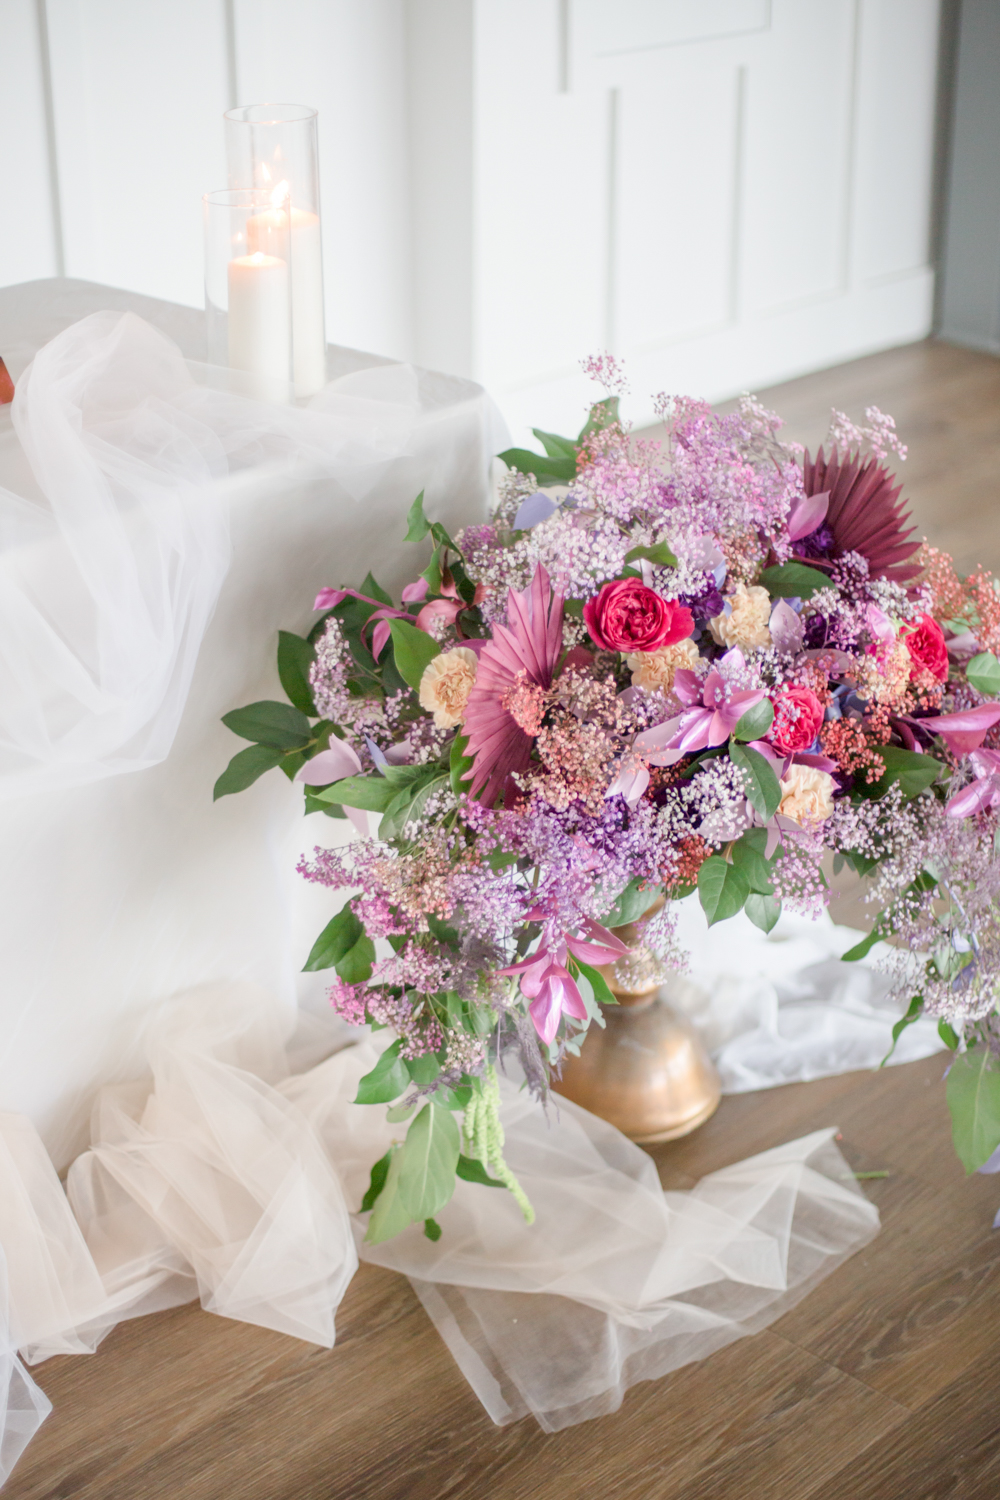 Enjoy the look of super bold florals with lots of colorful dried elements and greenery